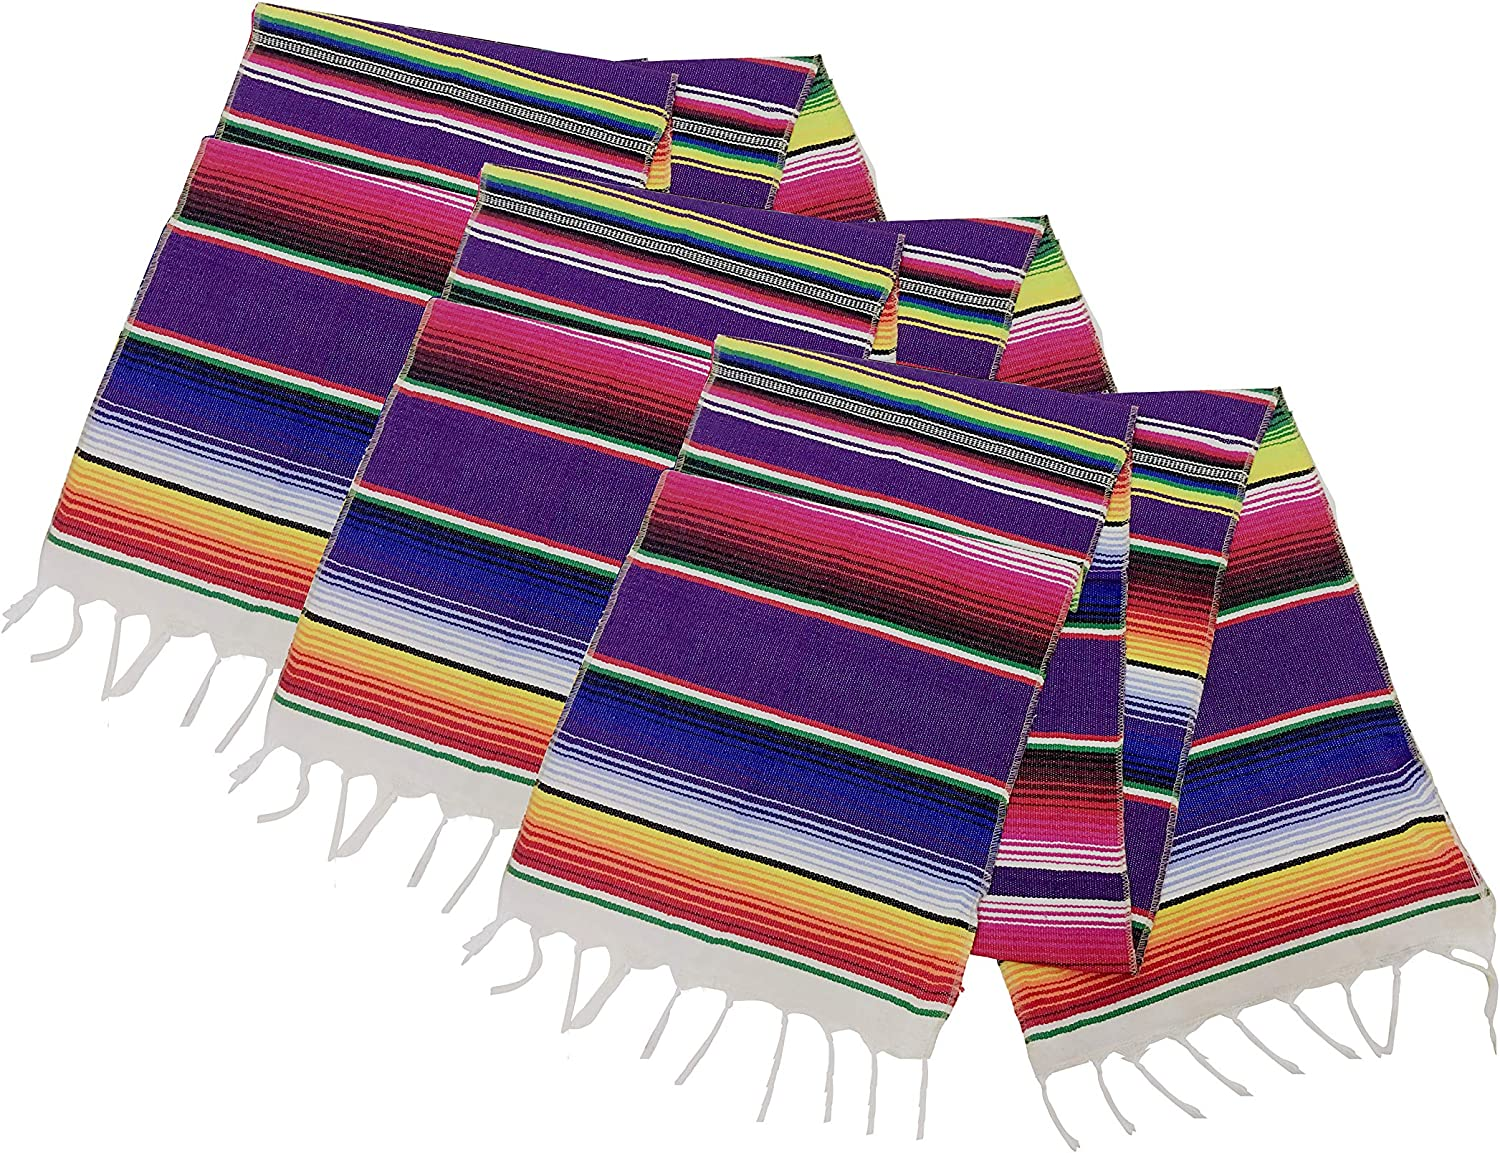 Neasyth Zarape Table Runner Mexican Serape Runners Chakra Tassel Handmade Tablecloth Mexican for Party Wedding Christmas Decorations 14 x 84 in (3 PCS)